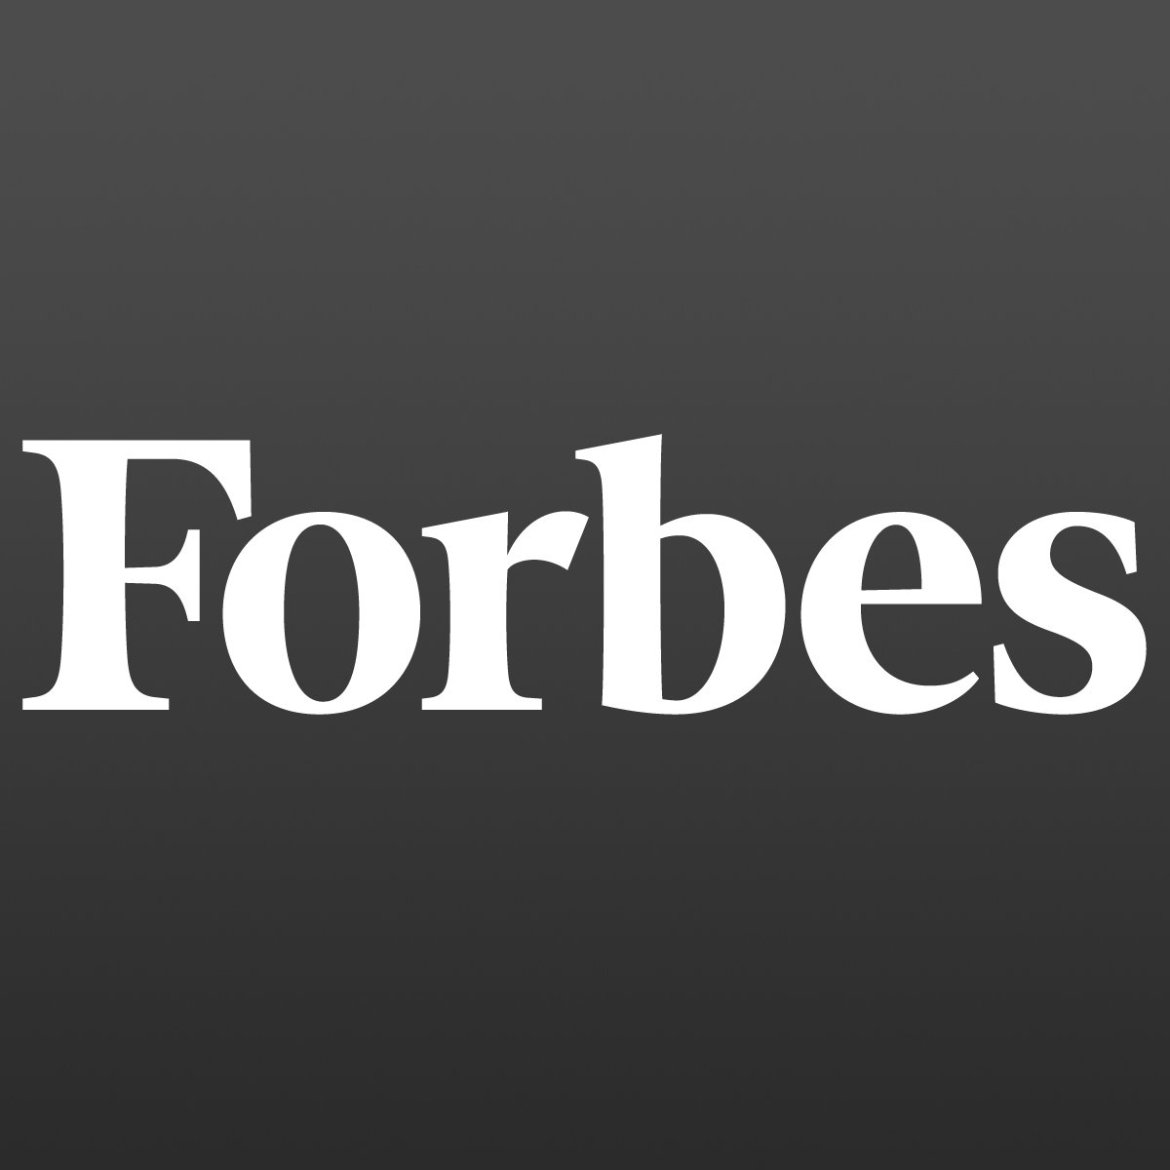 Why Twitter Is Increasing Its Focus On #MachineLearning  #ArtificialIntelligence - Forbes